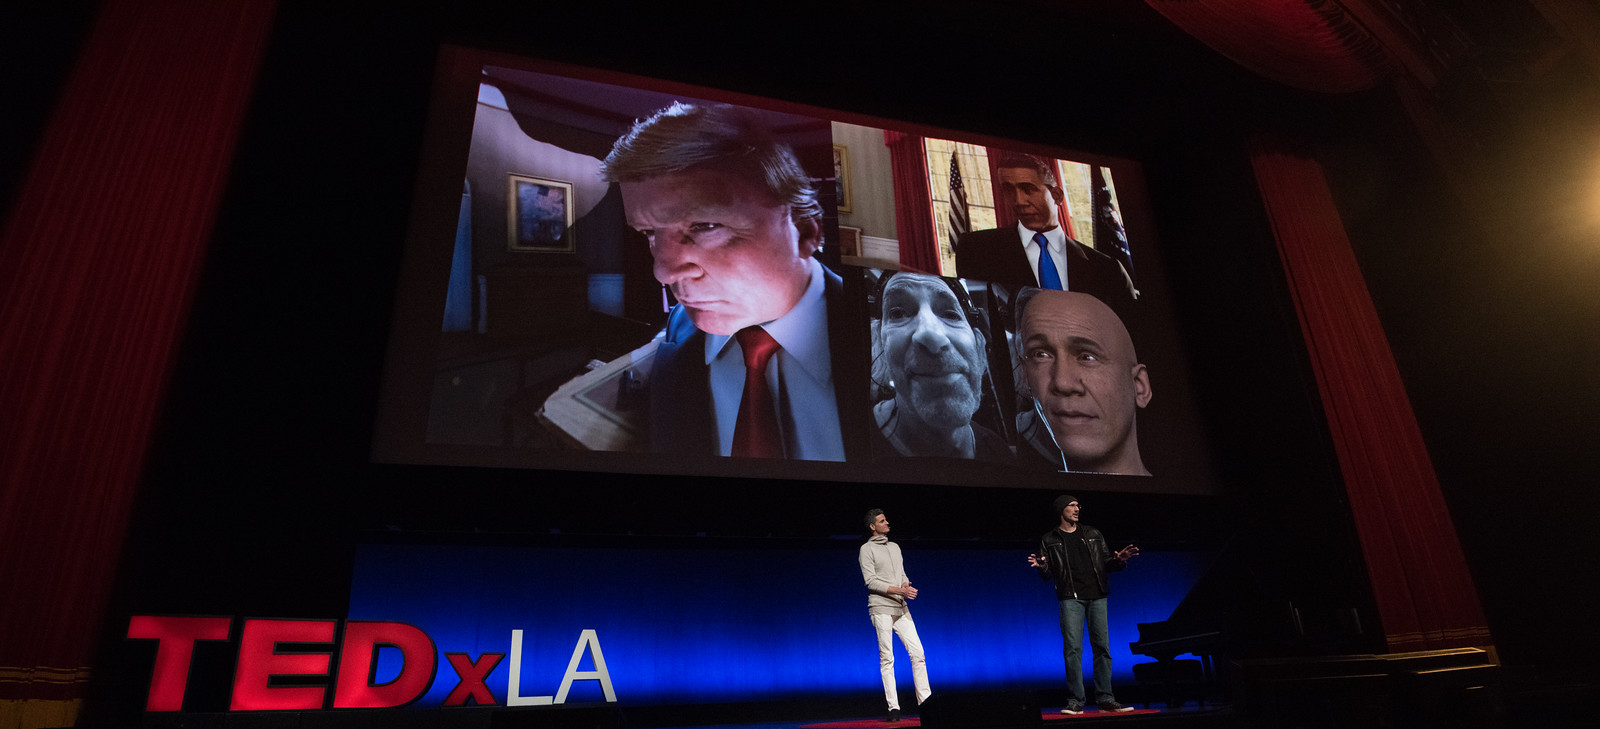 """John MacInnes and Remington Scott discussing """"Too Soon?""""at the Dolby Theater in Hollywood for TEDx LA 2016."""